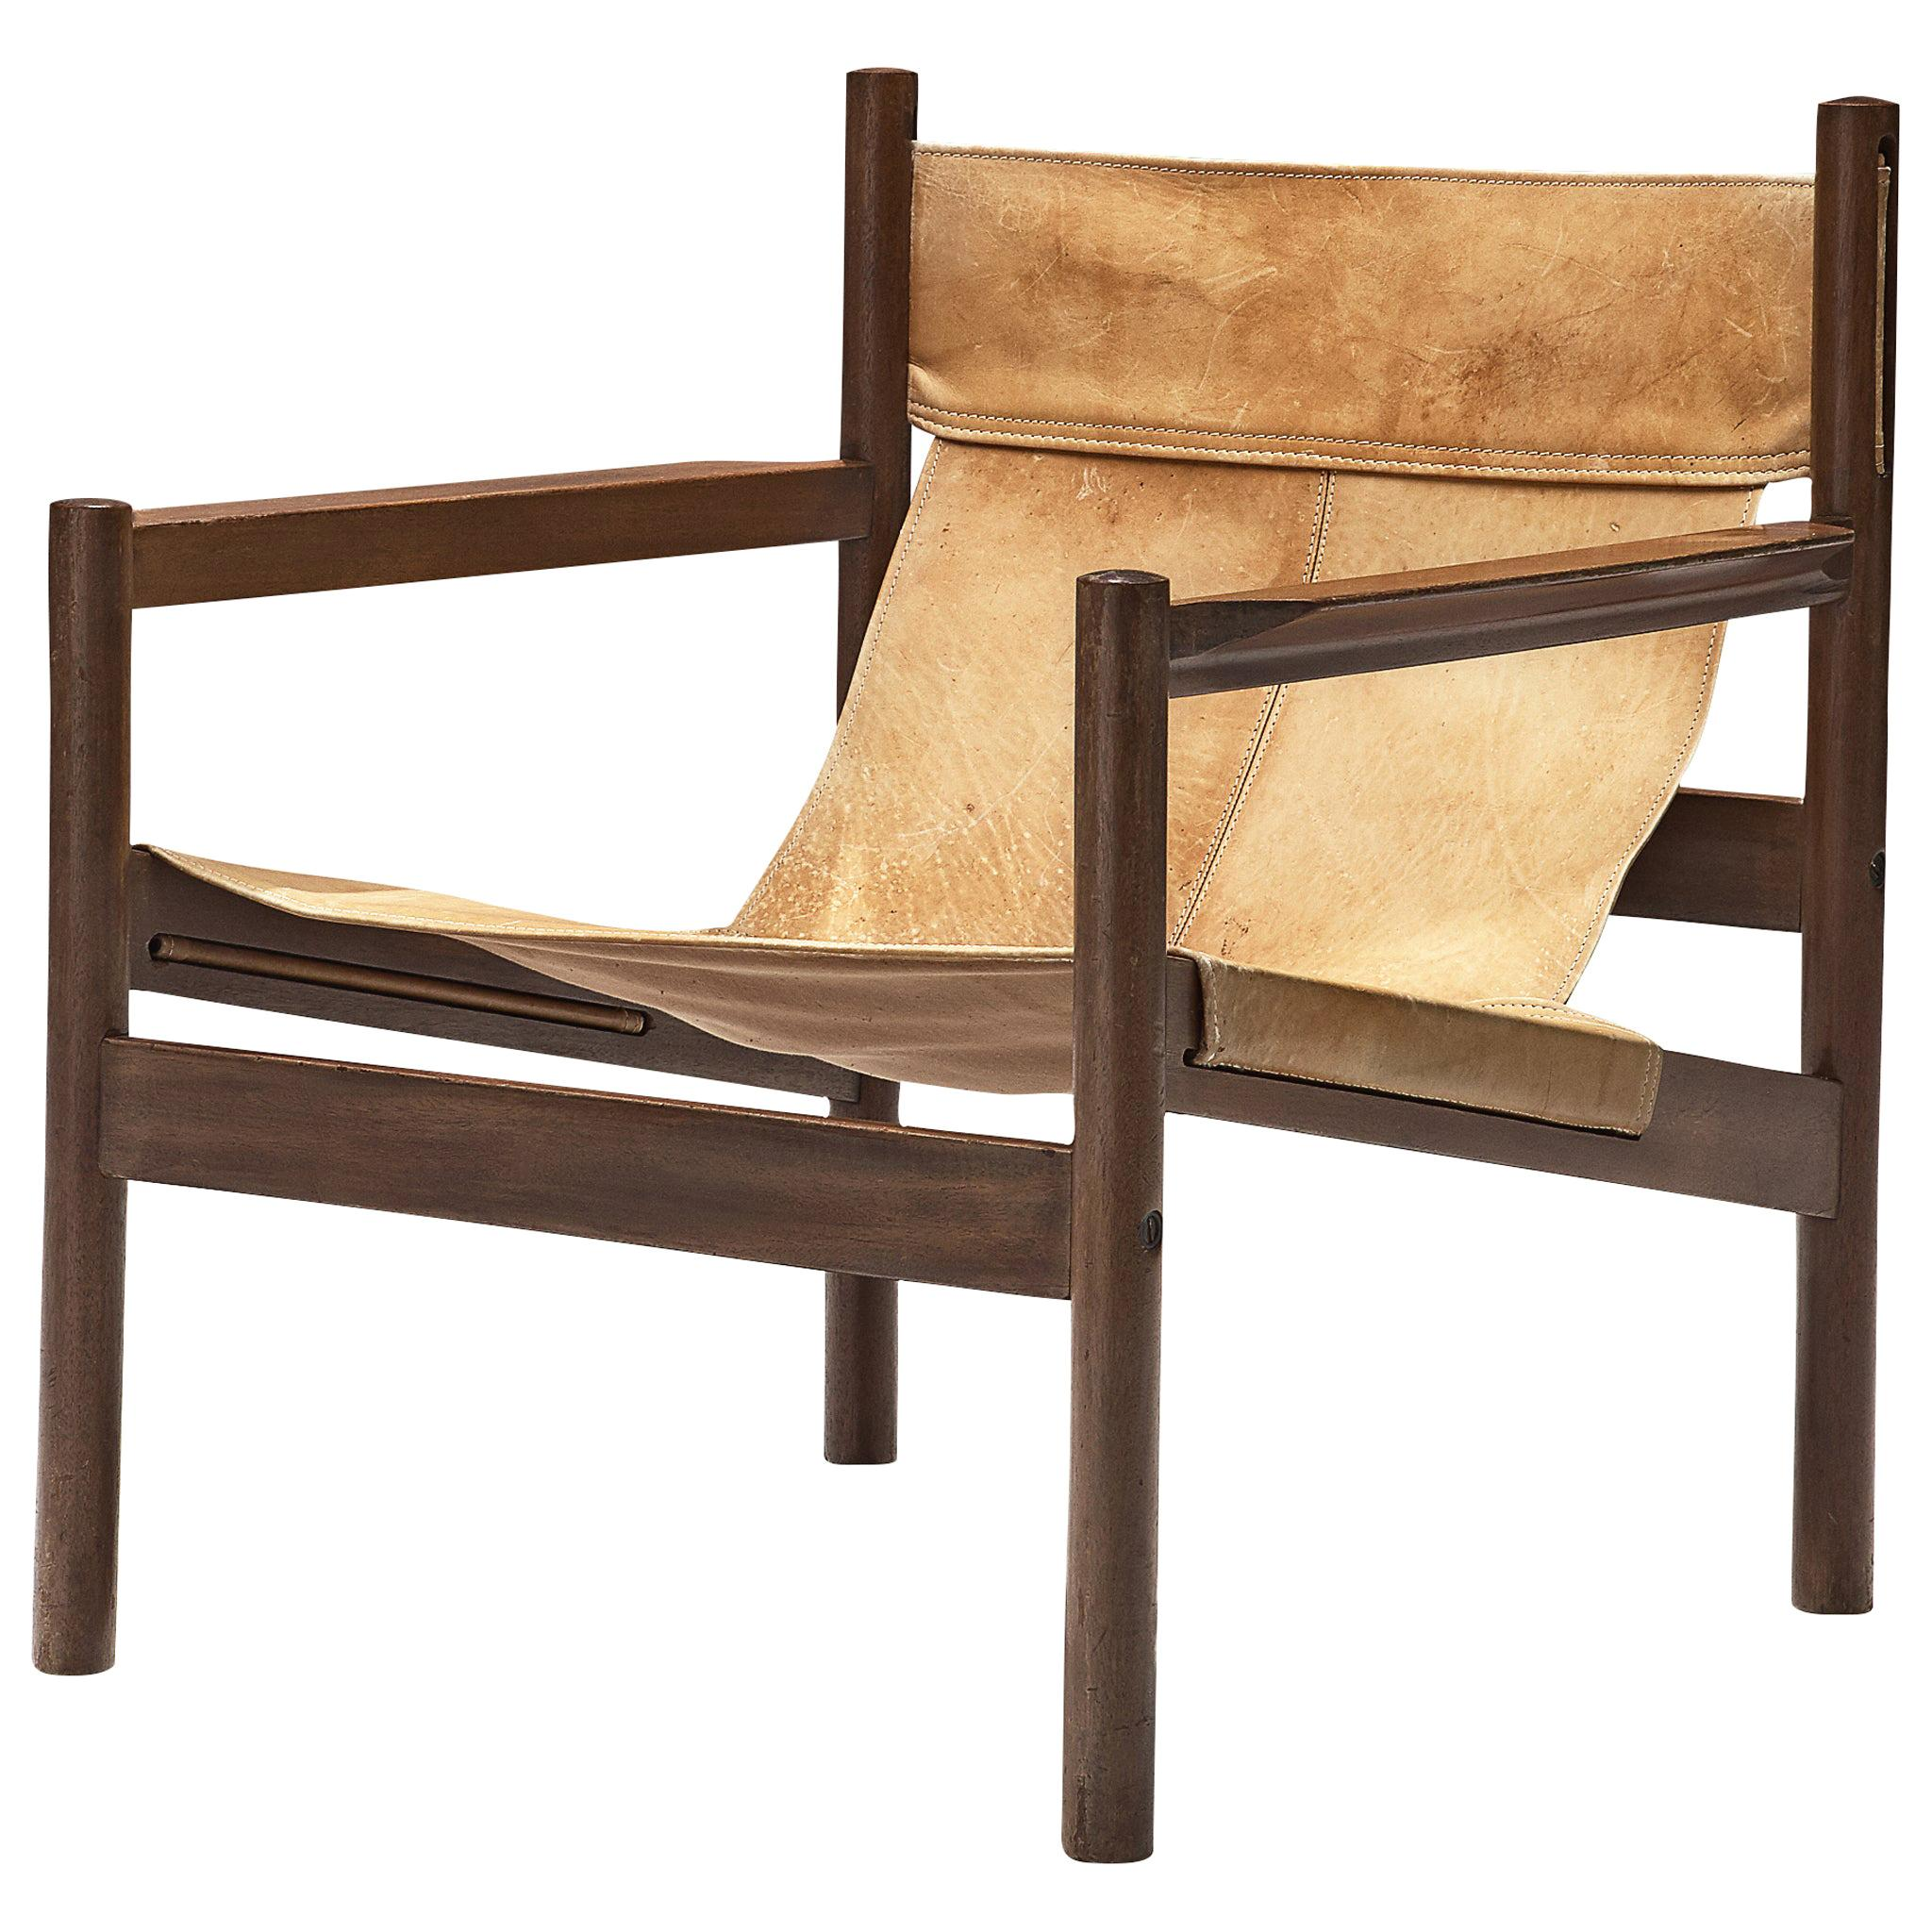 Michel Arnoult 'Roxinho' Lounge Chair in Naturel Leather